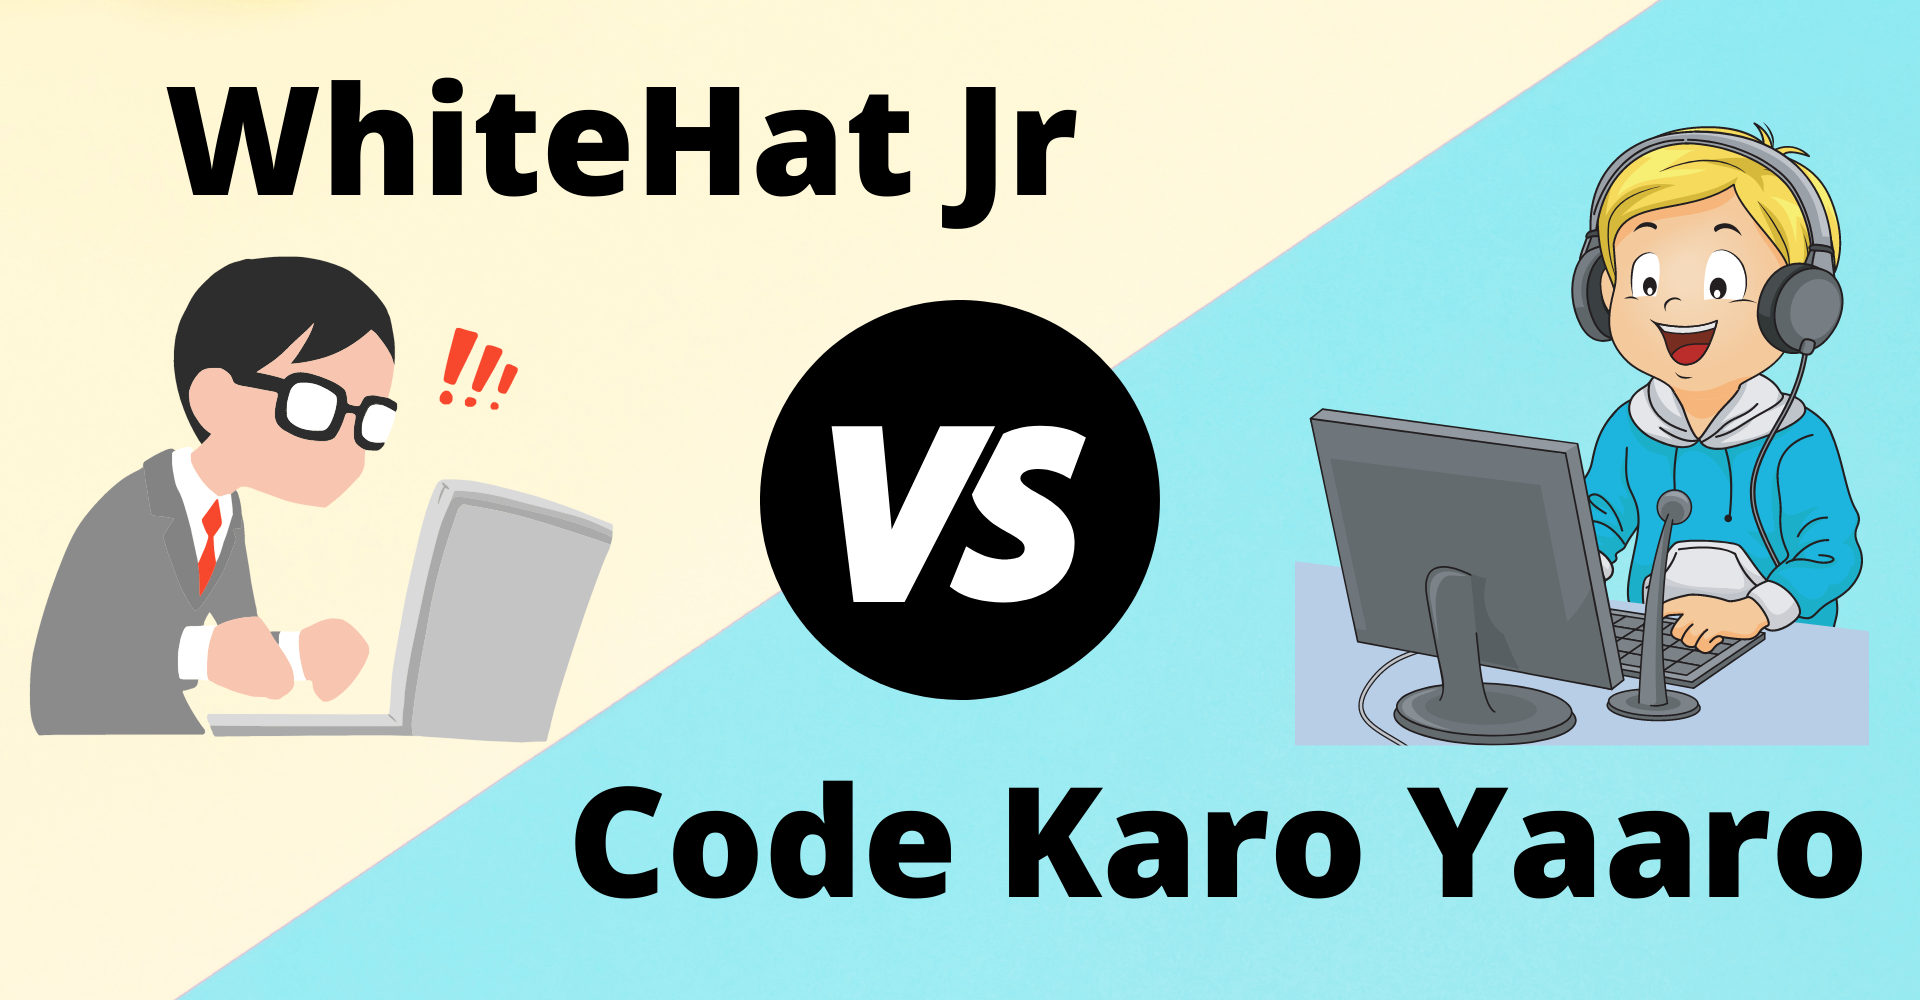 comparison-between-whitehatjr-and-codekaroyaaro